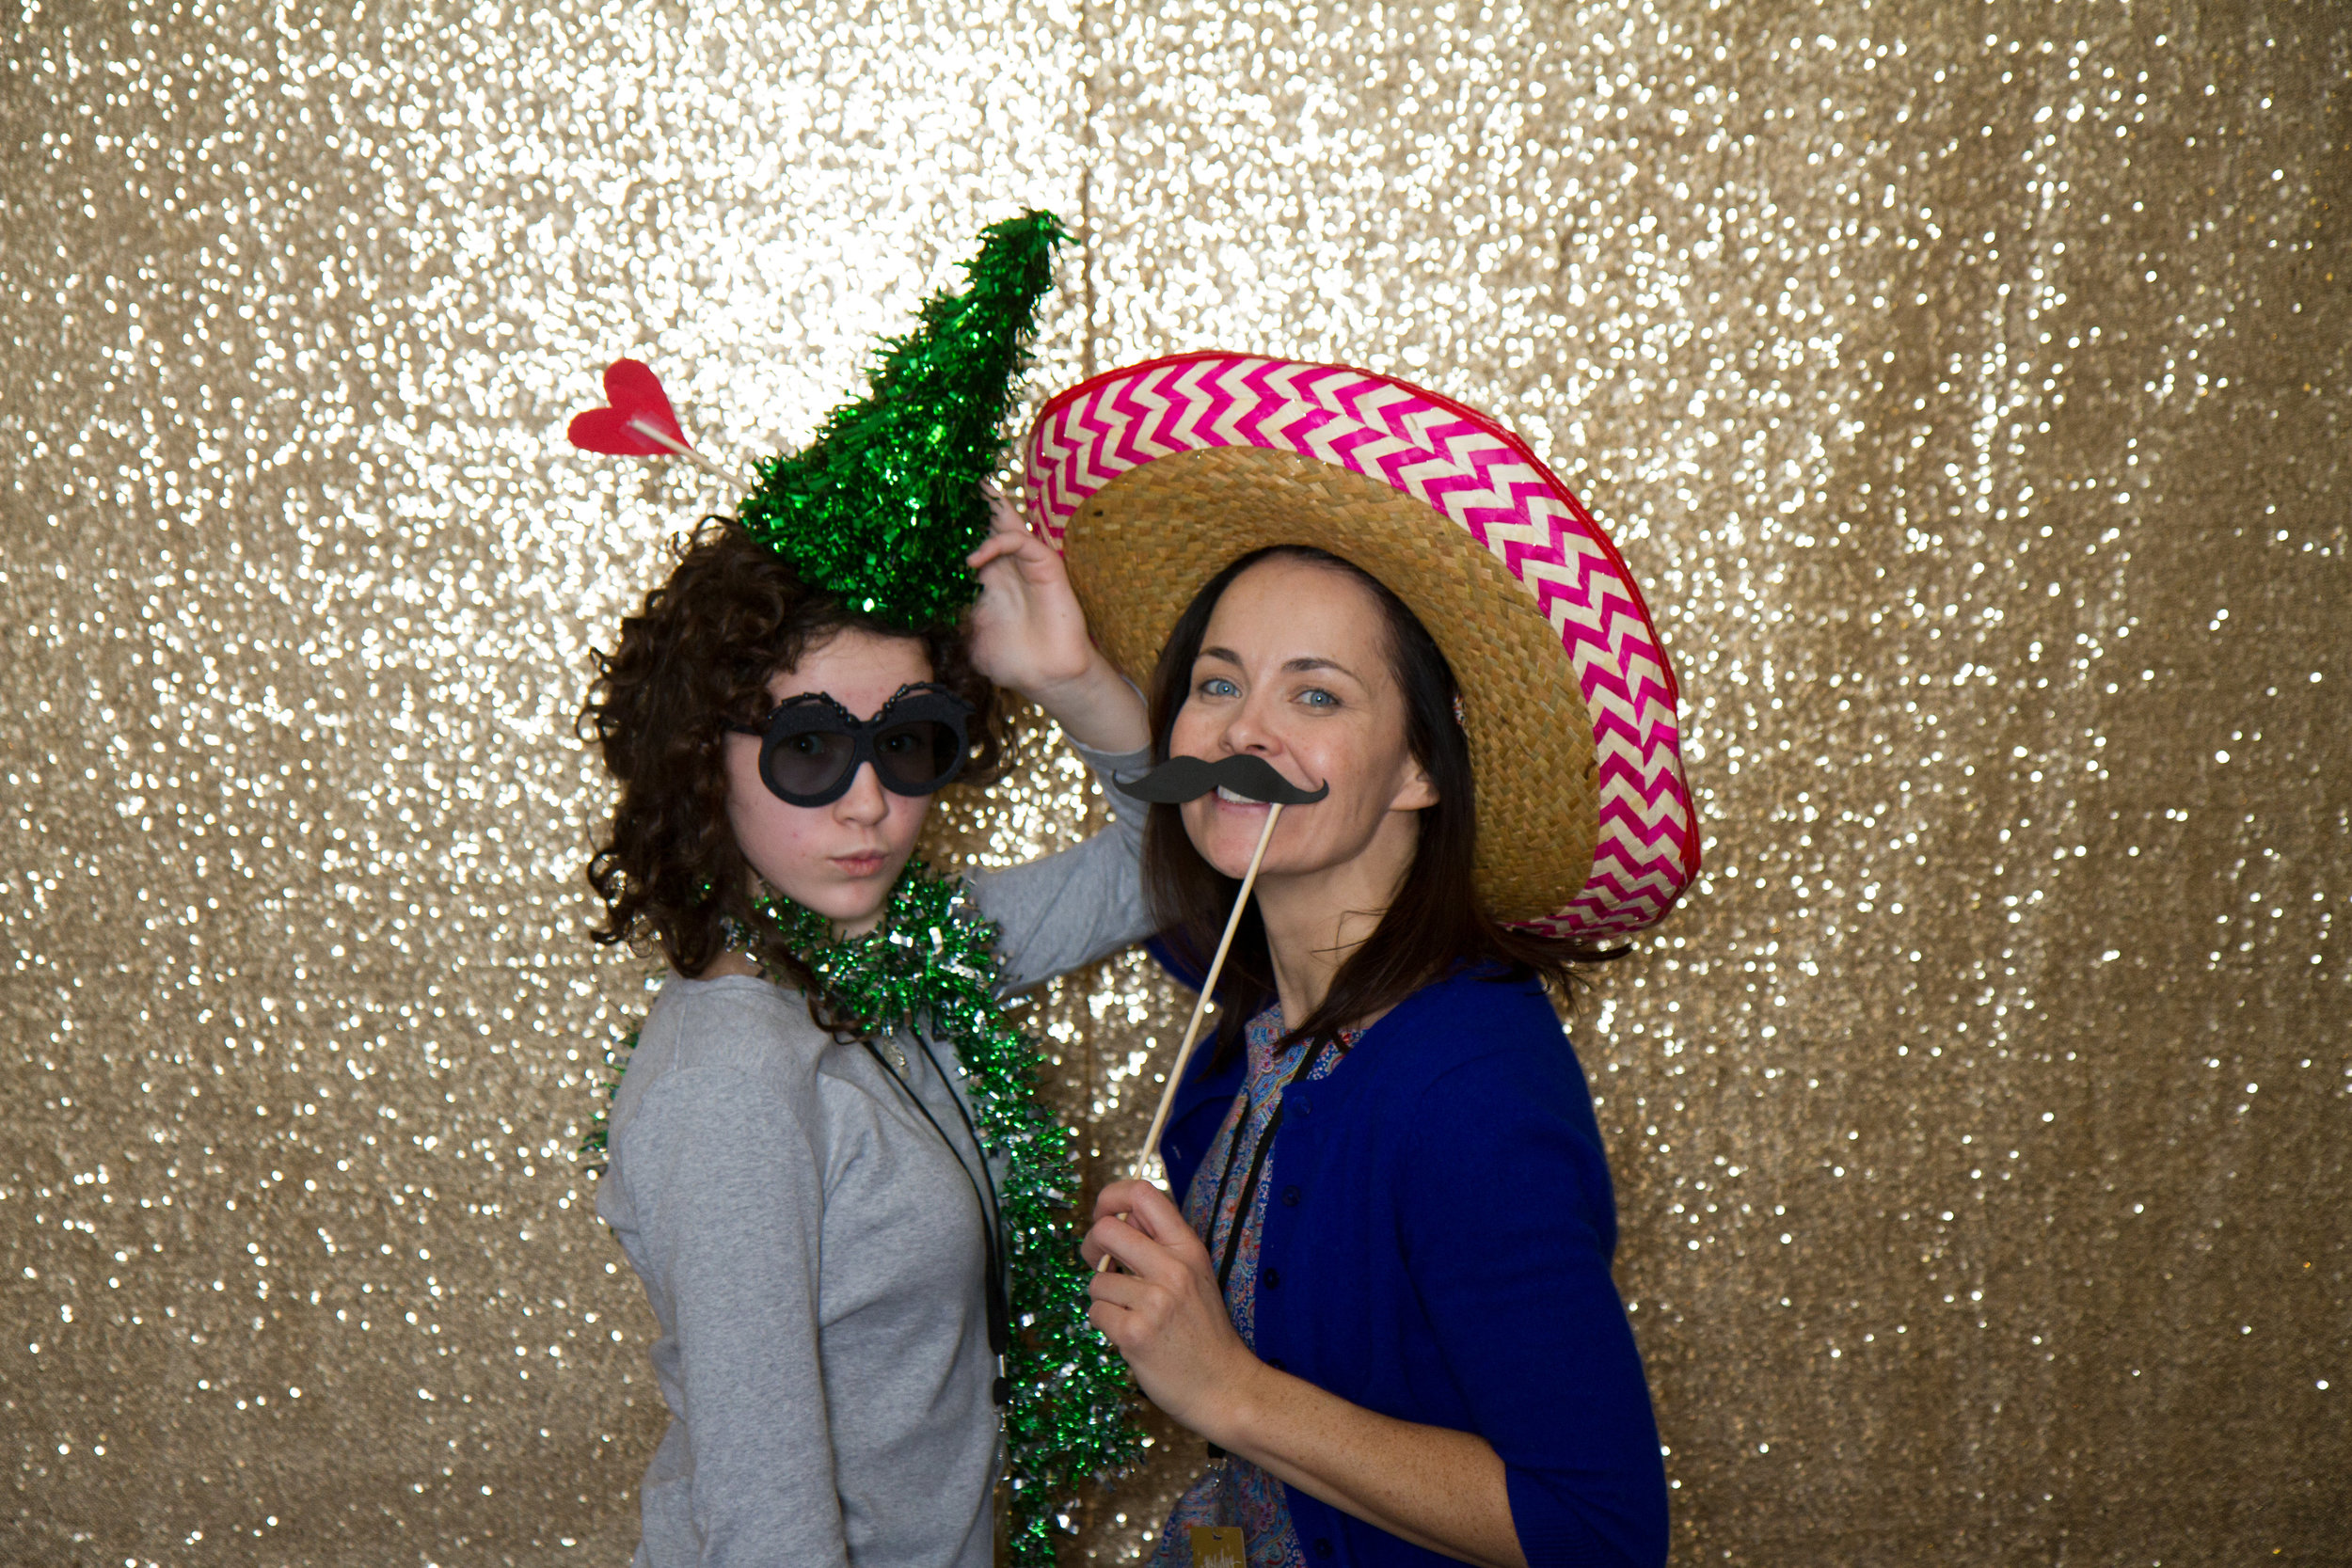 Holiday sparkly photo booth | MBC Holiday Show and Expo